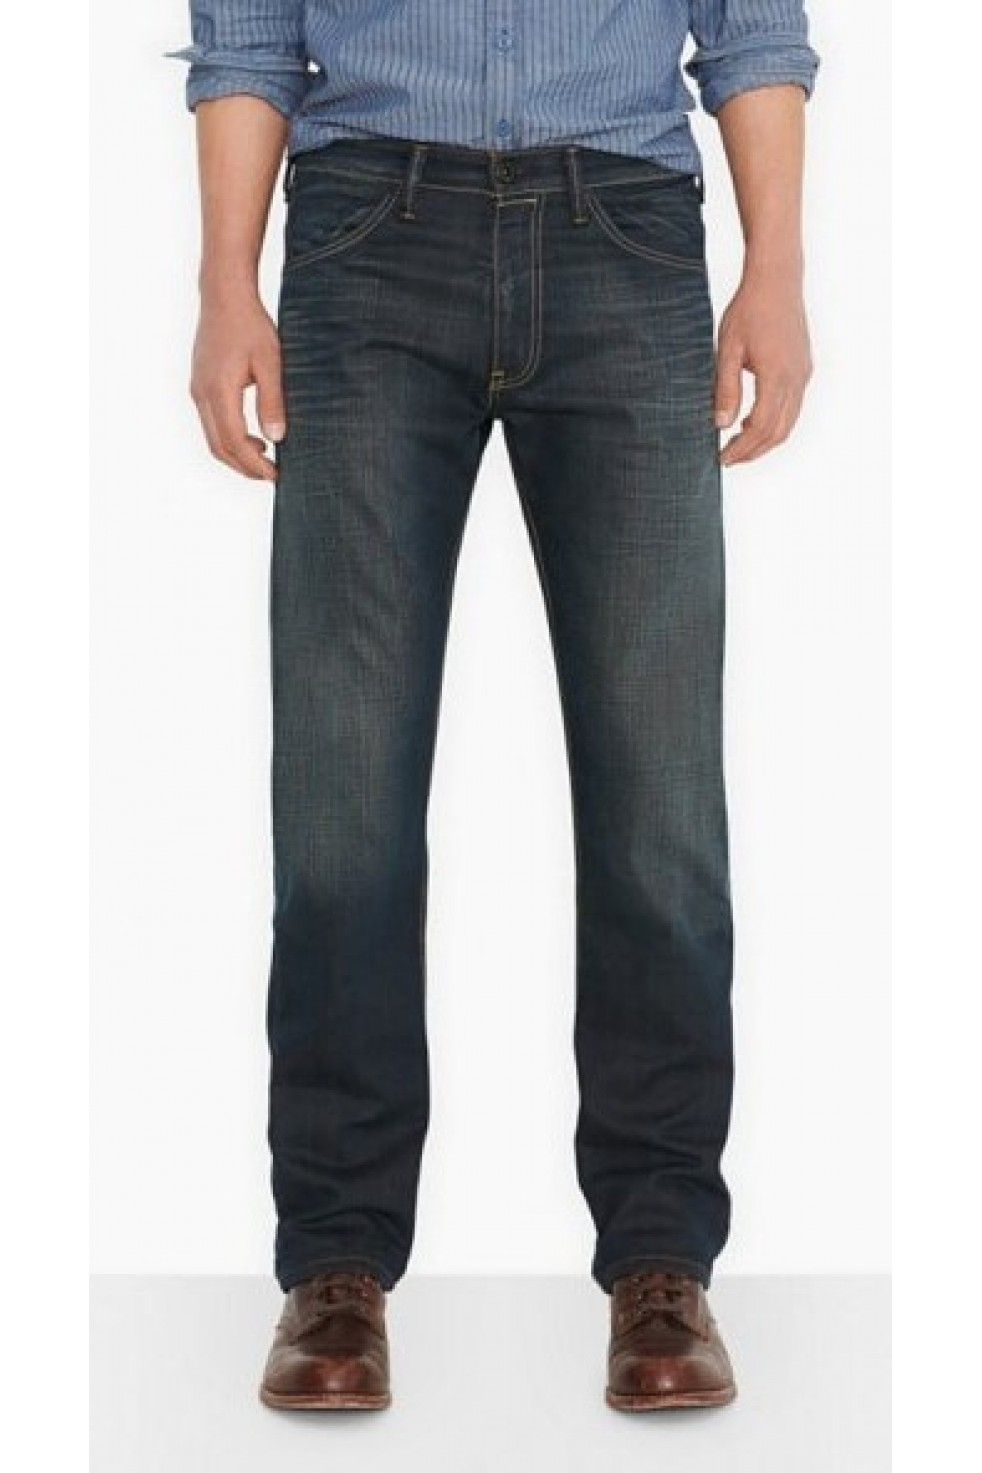 Levis-Erkek-Jean-Pantolon-504-Original-Fit-00504-0131